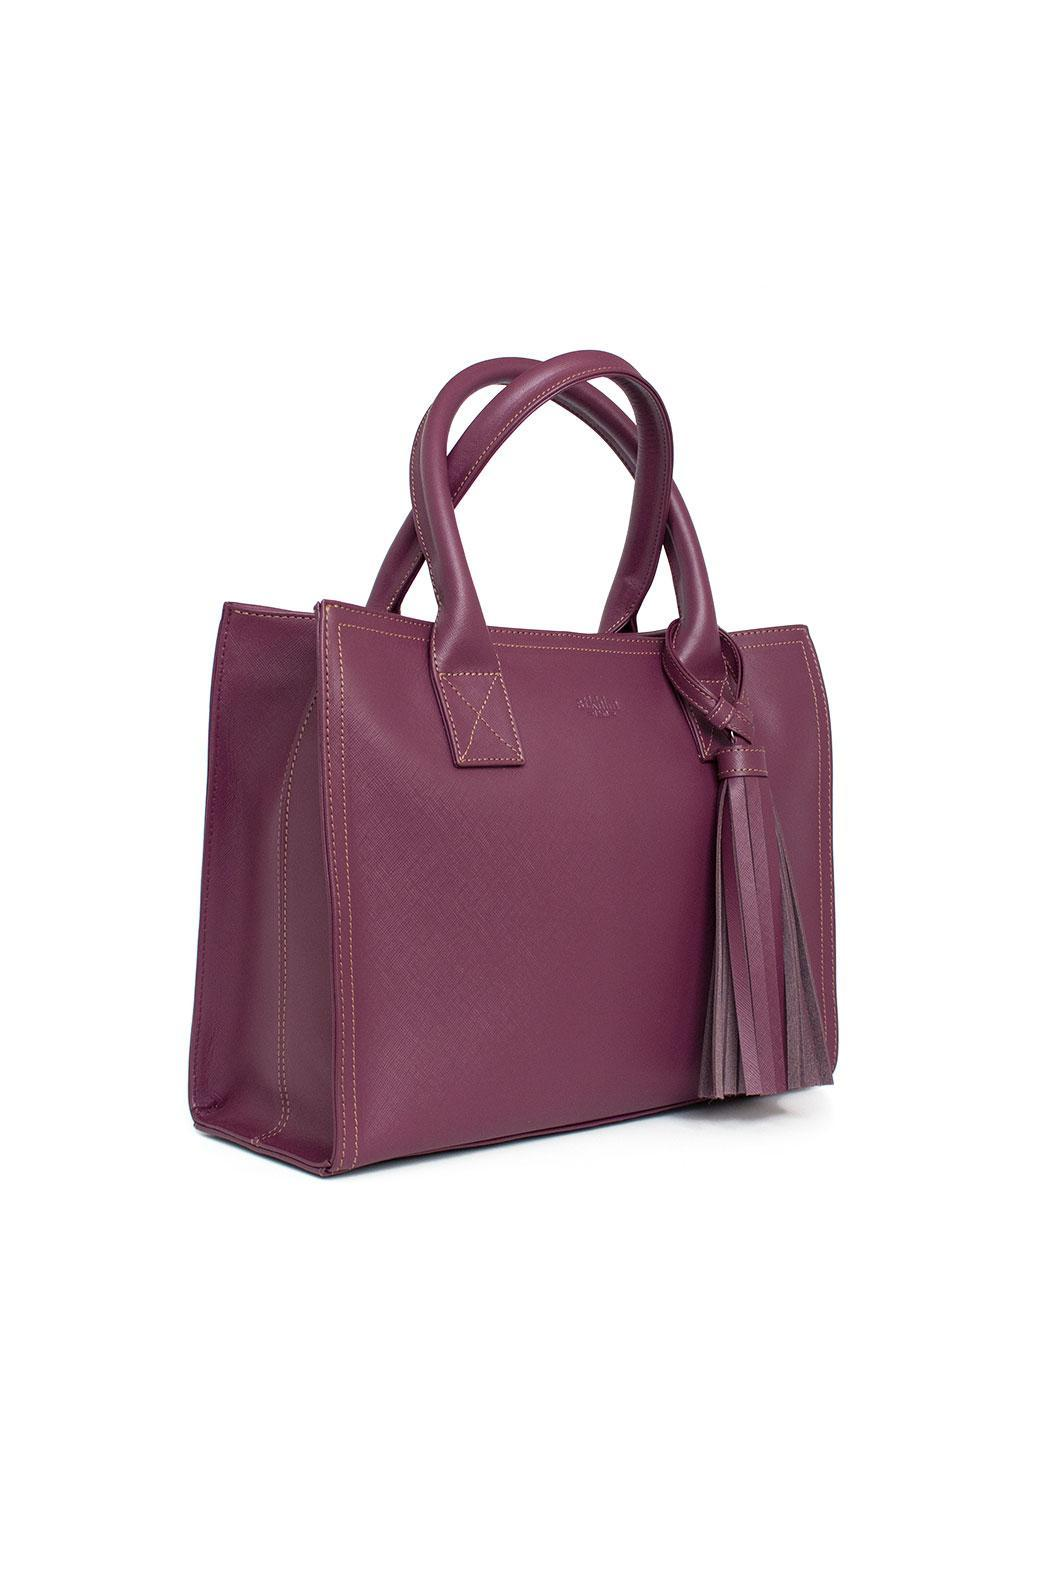 estocolmoapparel Purple Leather Handbag - Side Cropped Image